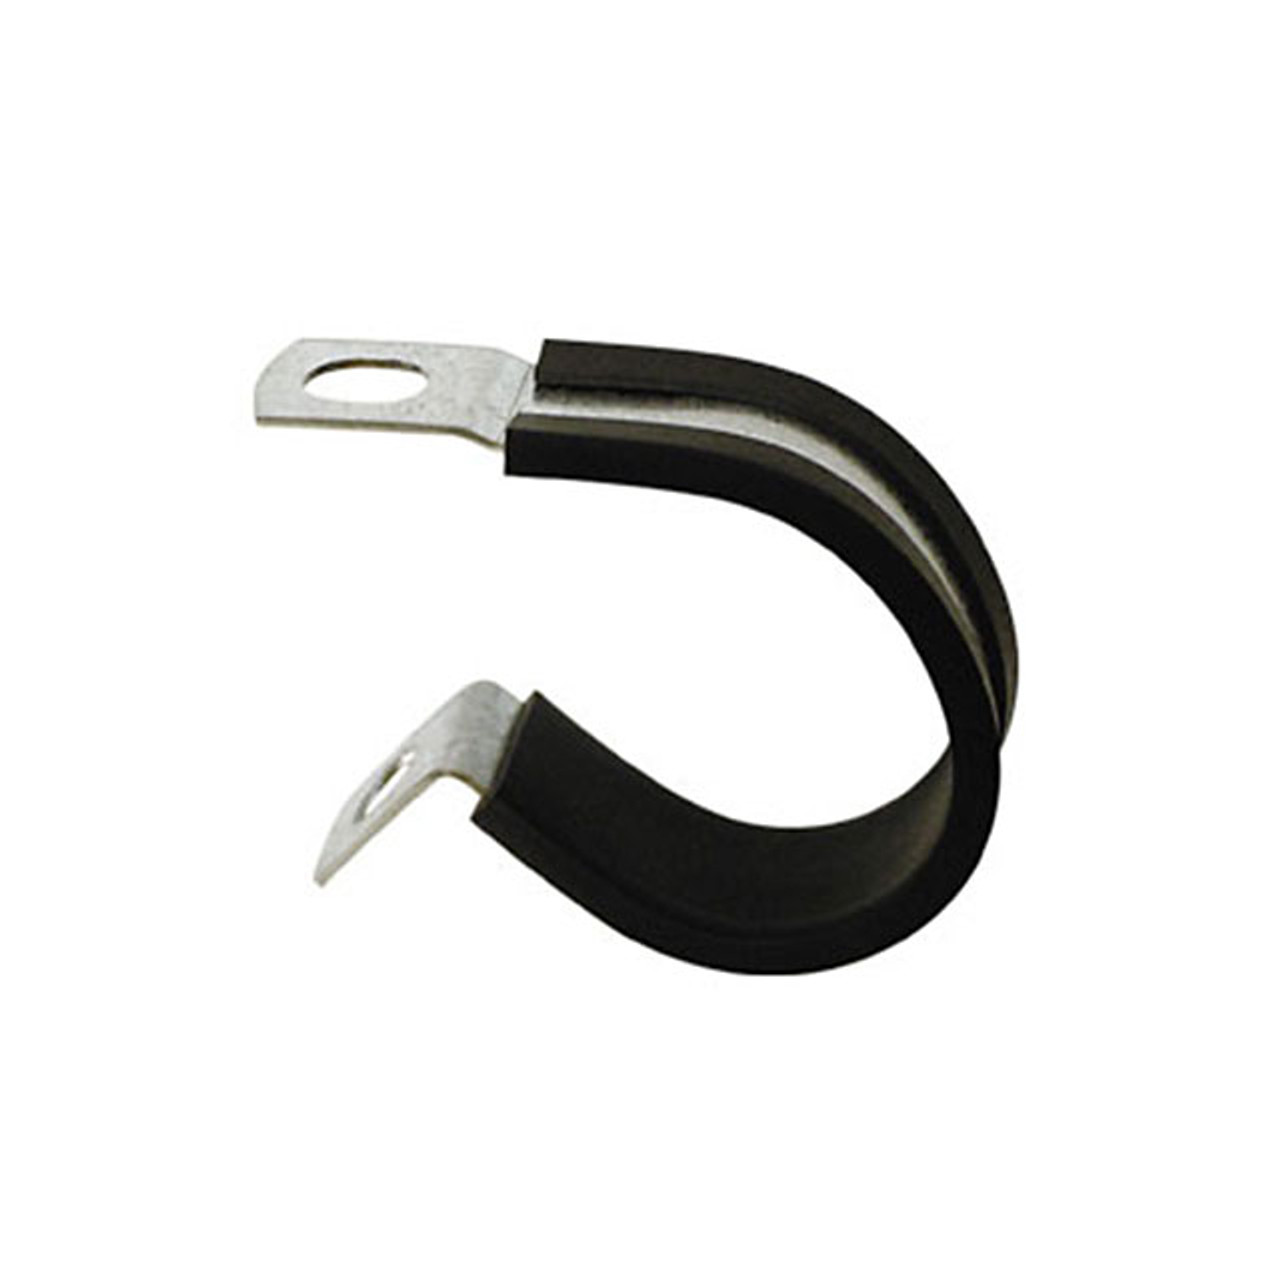 CUSHION CABLE CLAMP 1-1/4